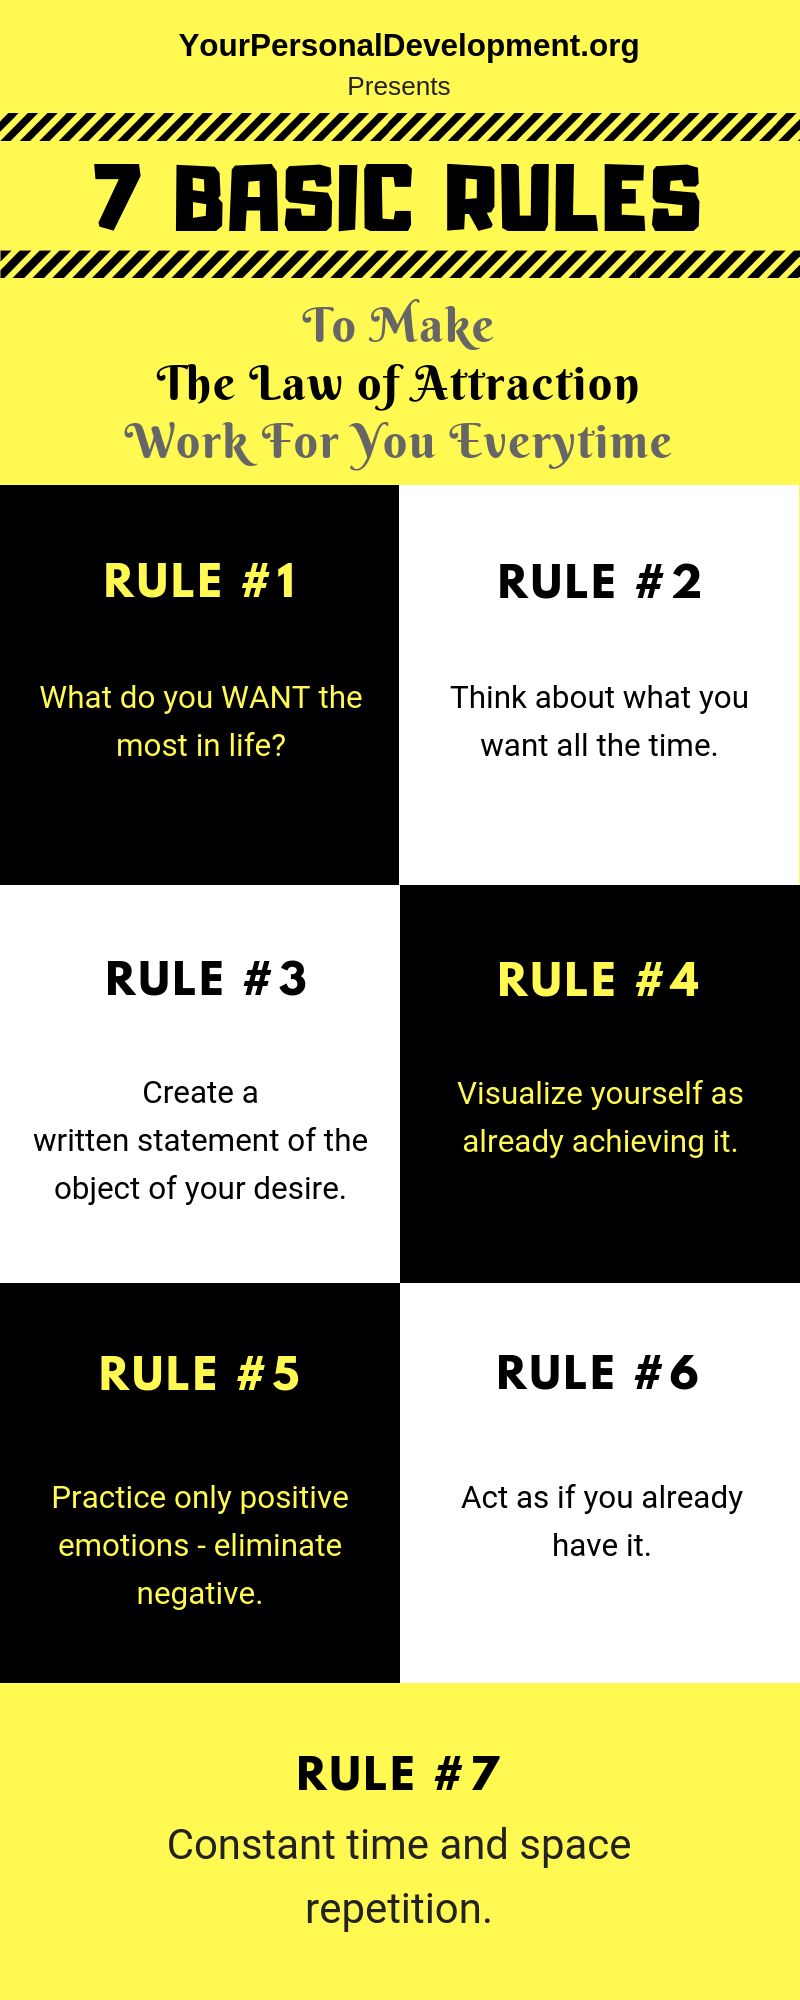 Have You Been Trying To Practice The Law Of Attraction But Somehow You Get Stuck Every Time Or It Seems To You That You Are Missing Some Basic Rules To Make